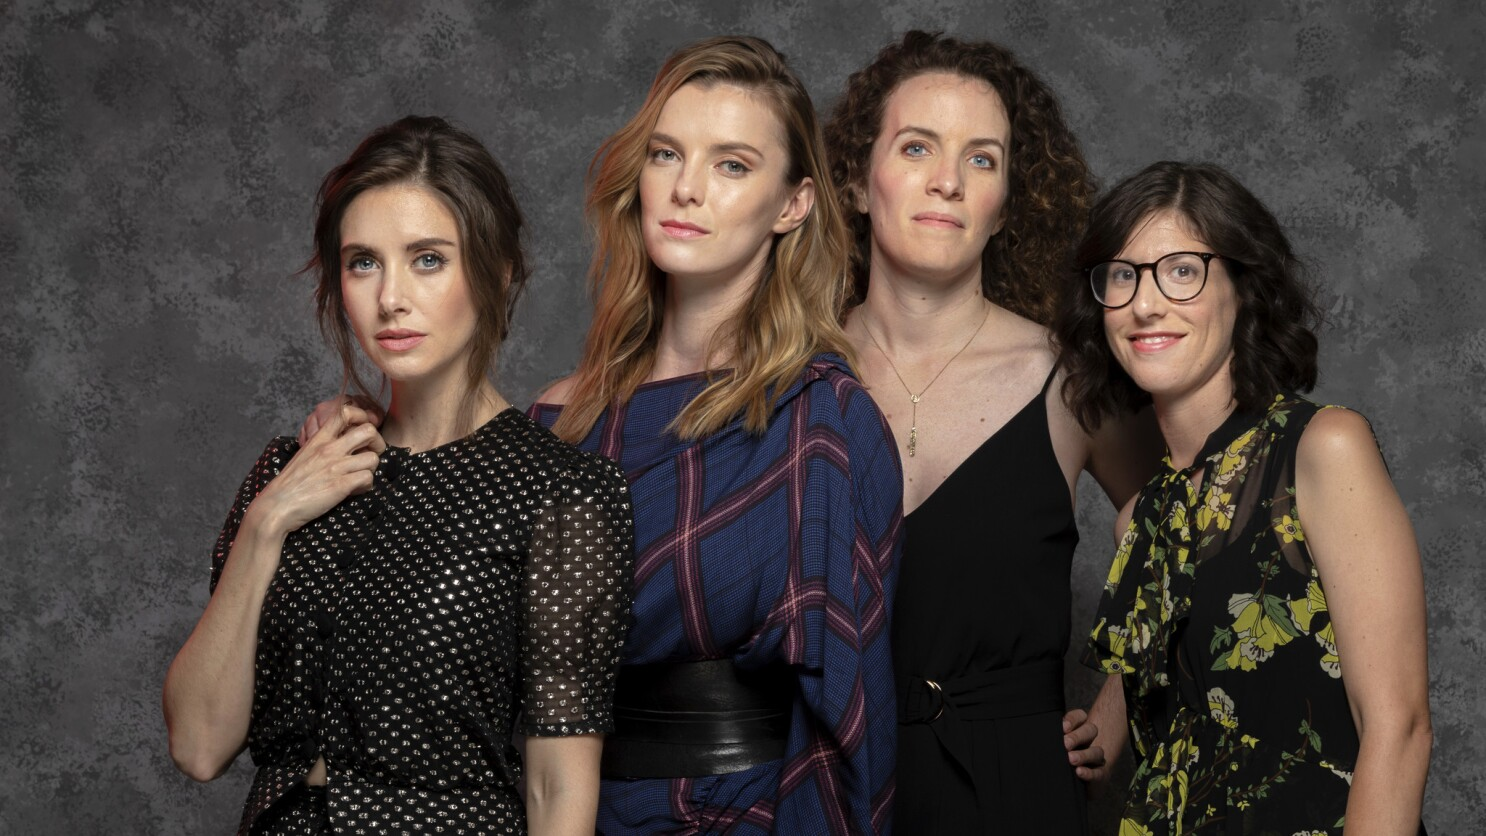 Alison Brie Glow Boobs glow': the story behind the weinstein-esque episode - los